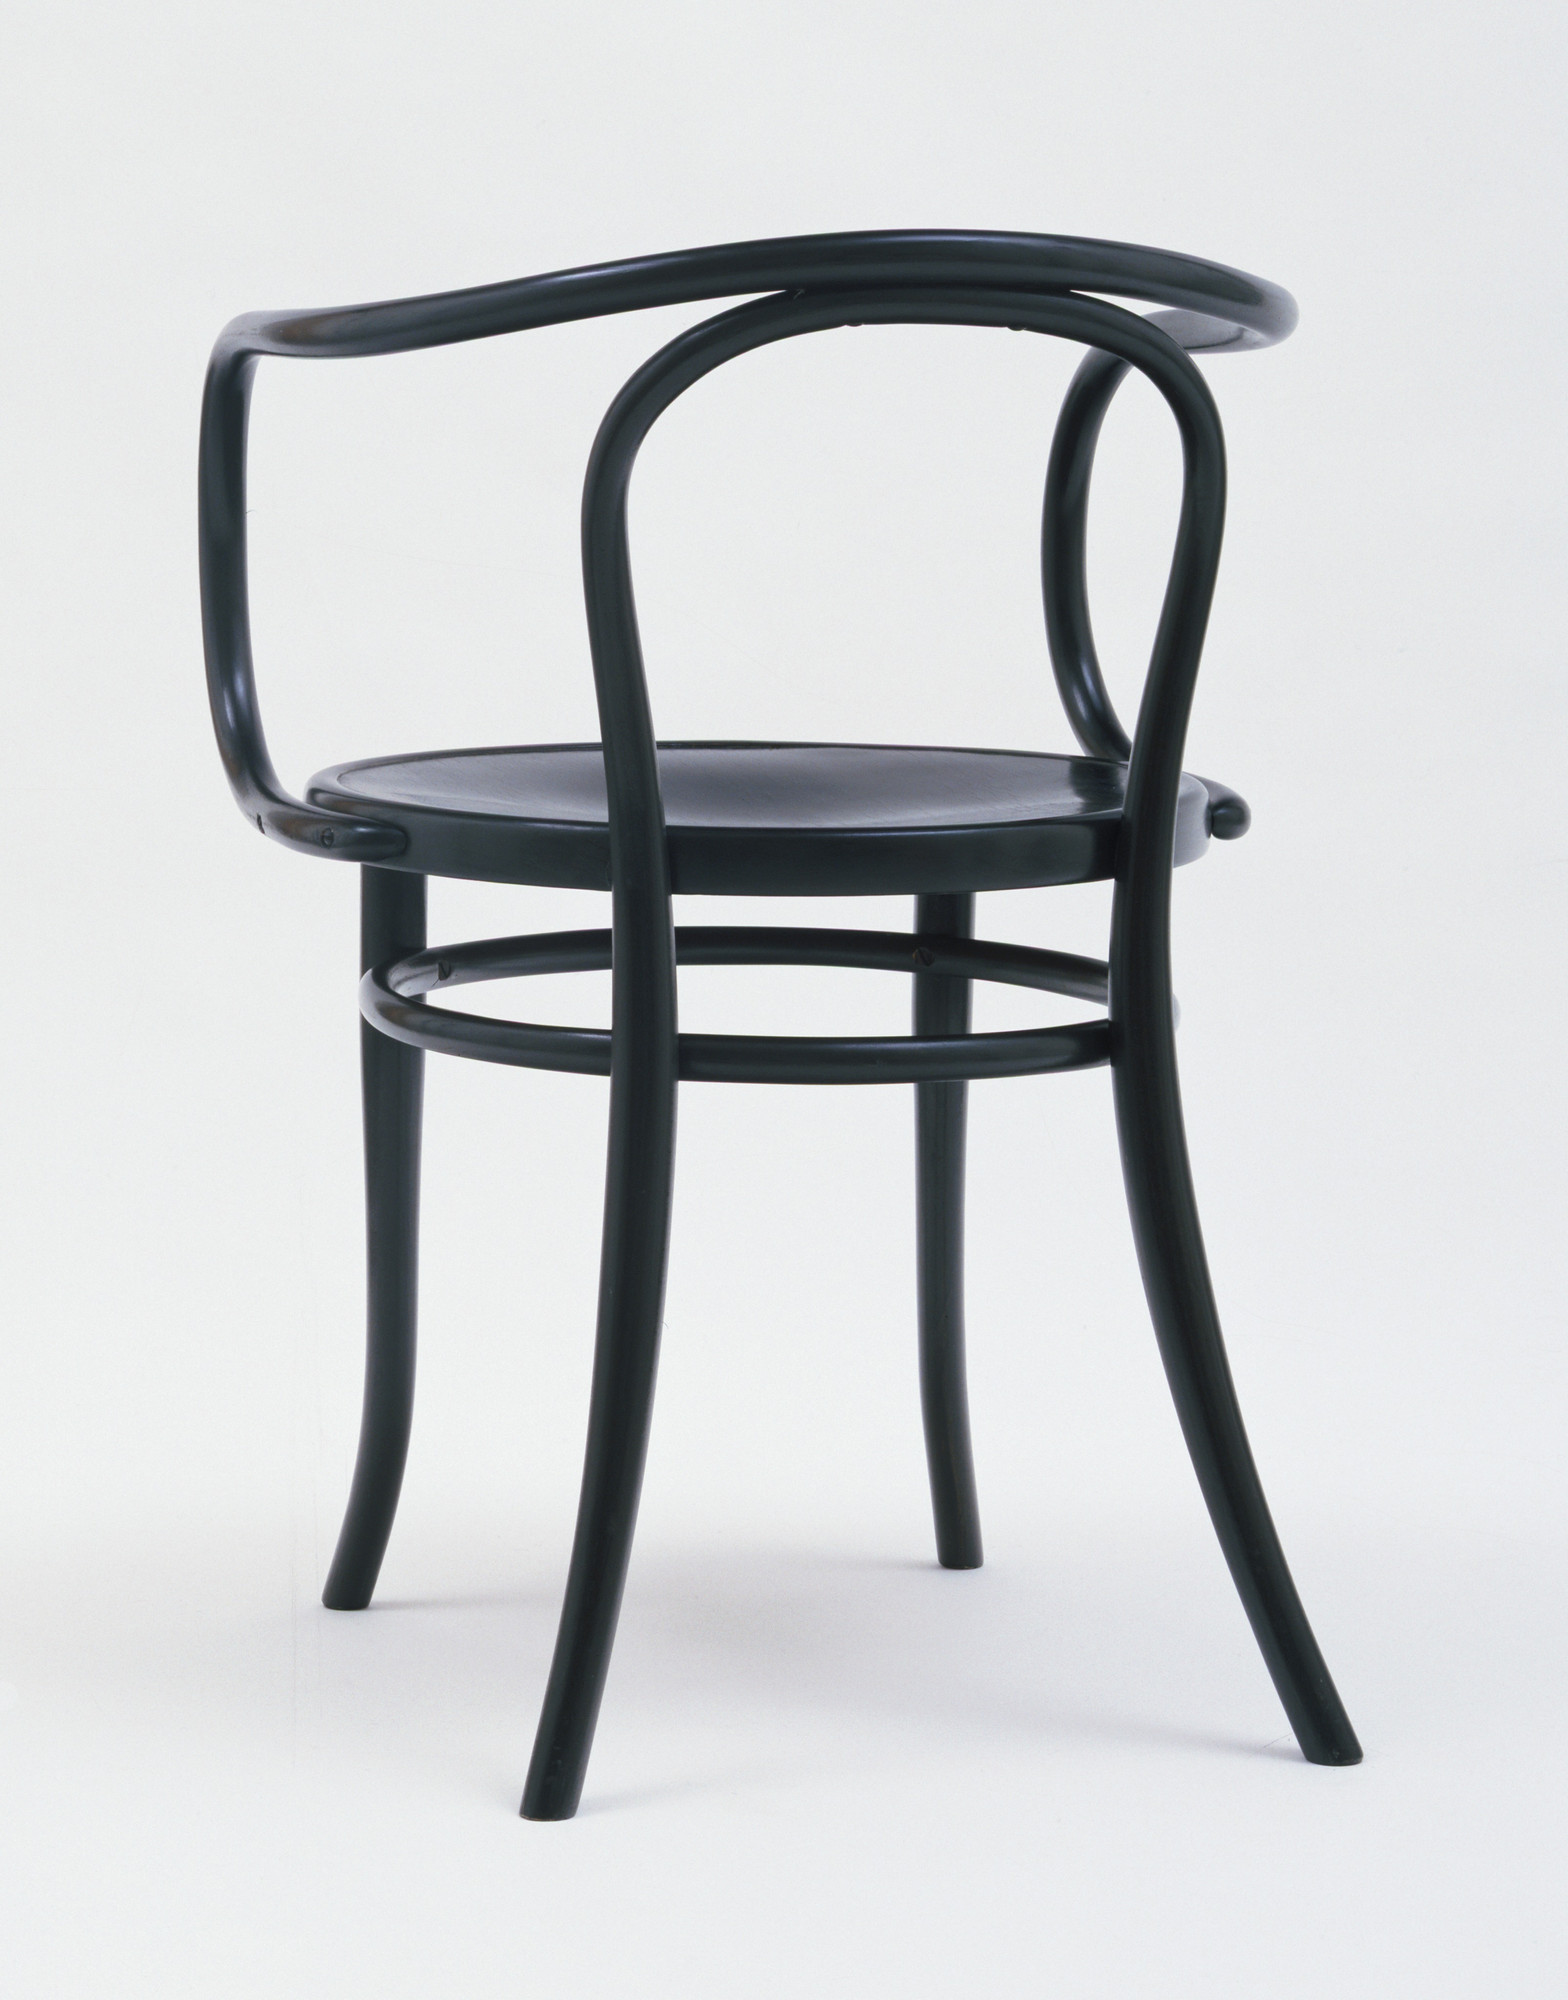 Gebrüder Thonet, company design. Armchair (model 6009 later B9). c. 1904